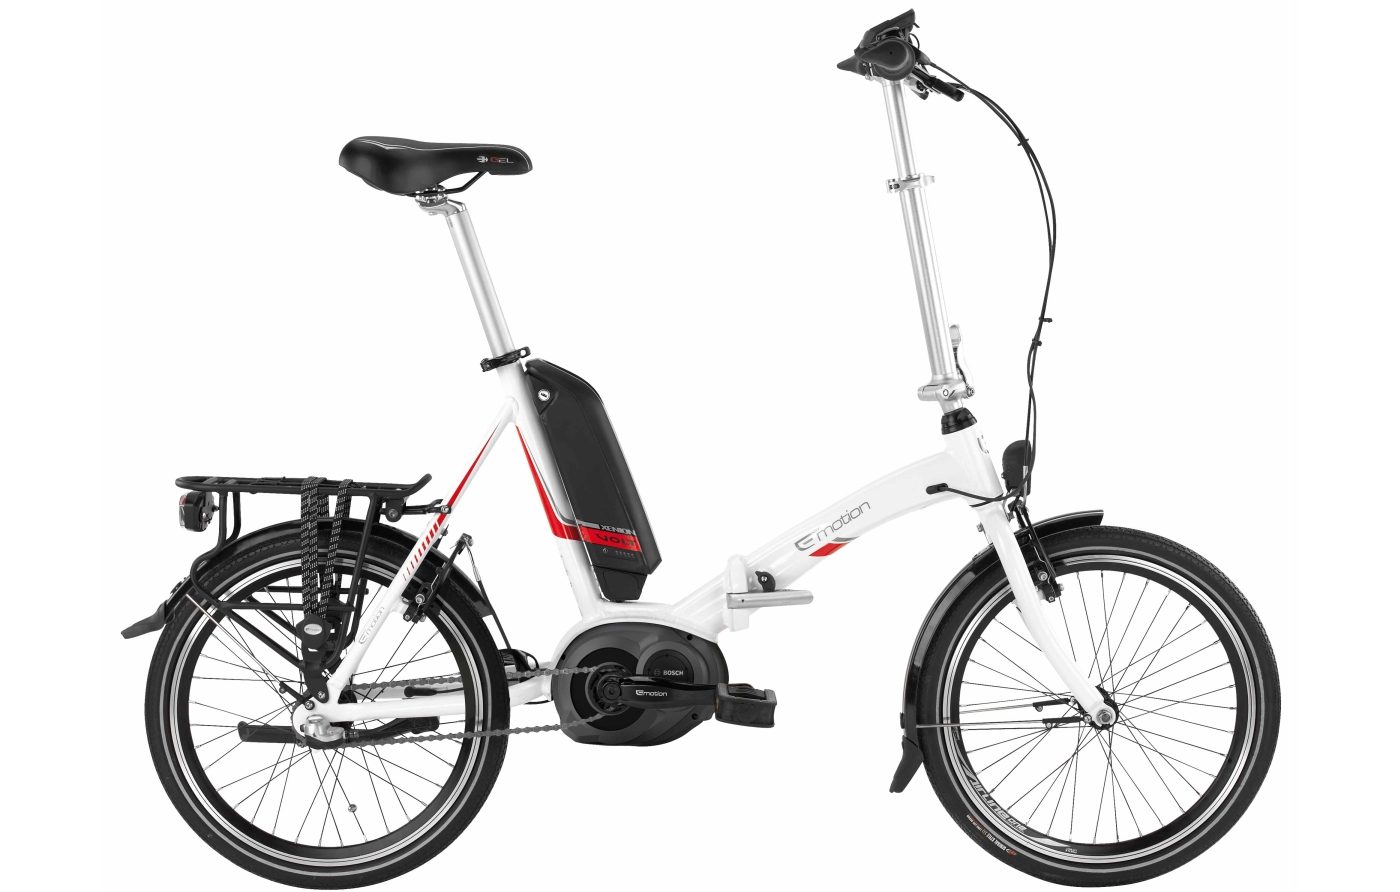 xenion volt folding electric bike with bosch motor from bh. Black Bedroom Furniture Sets. Home Design Ideas